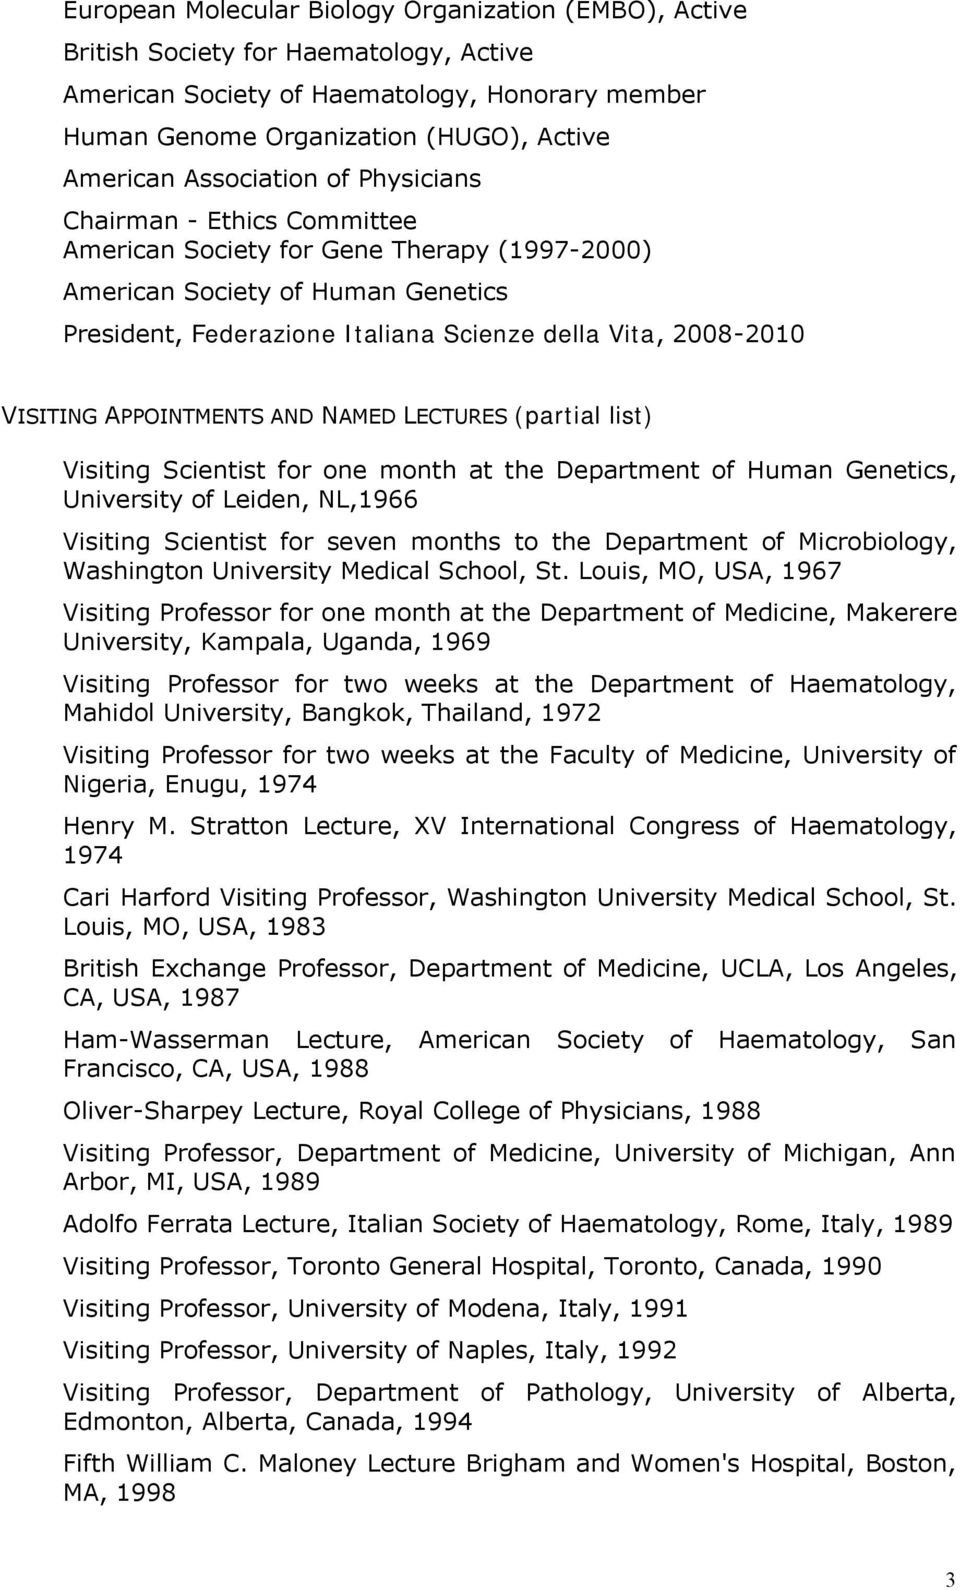 VISITING APPOINTMENTS AND NAMED LECTURES (partial list) Visiting Scientist for one month at the Department of Human Genetics, University of Leiden, NL,1966 Visiting Scientist for seven months to the